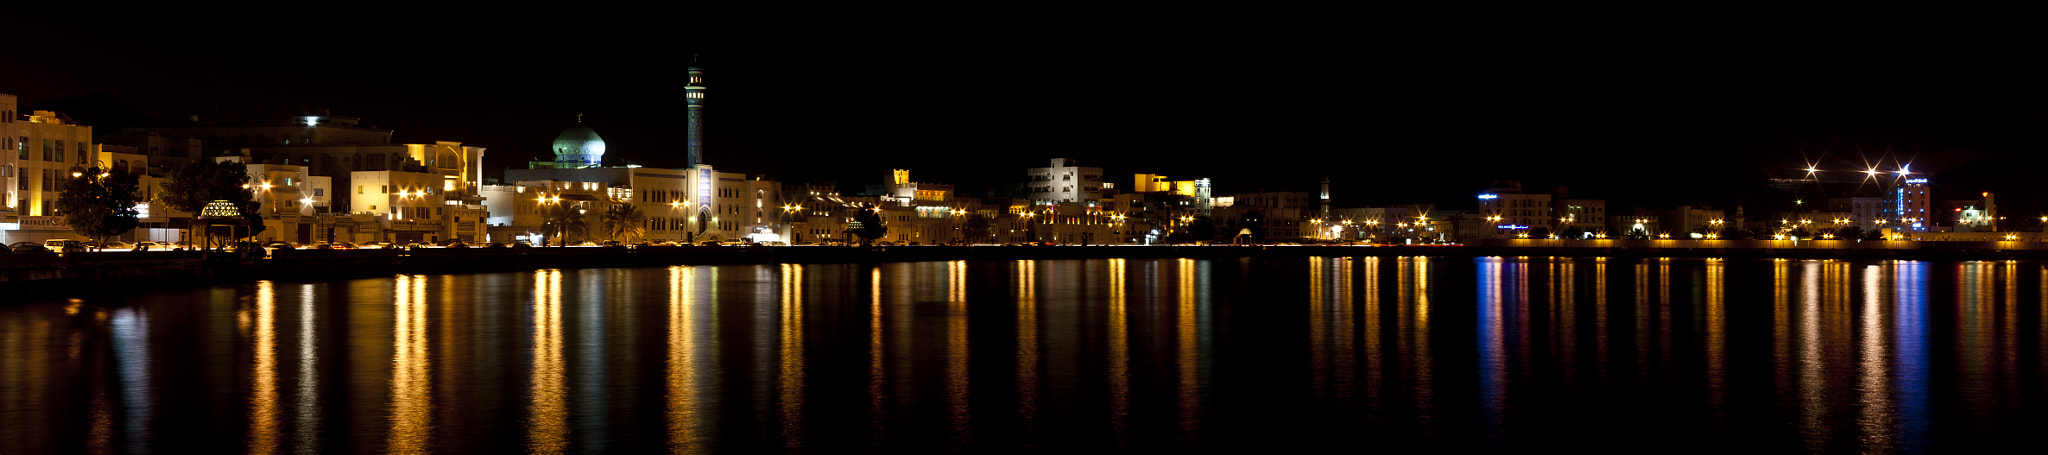 Photograph Panorama 1 by Omar Al-Habsi on 500px